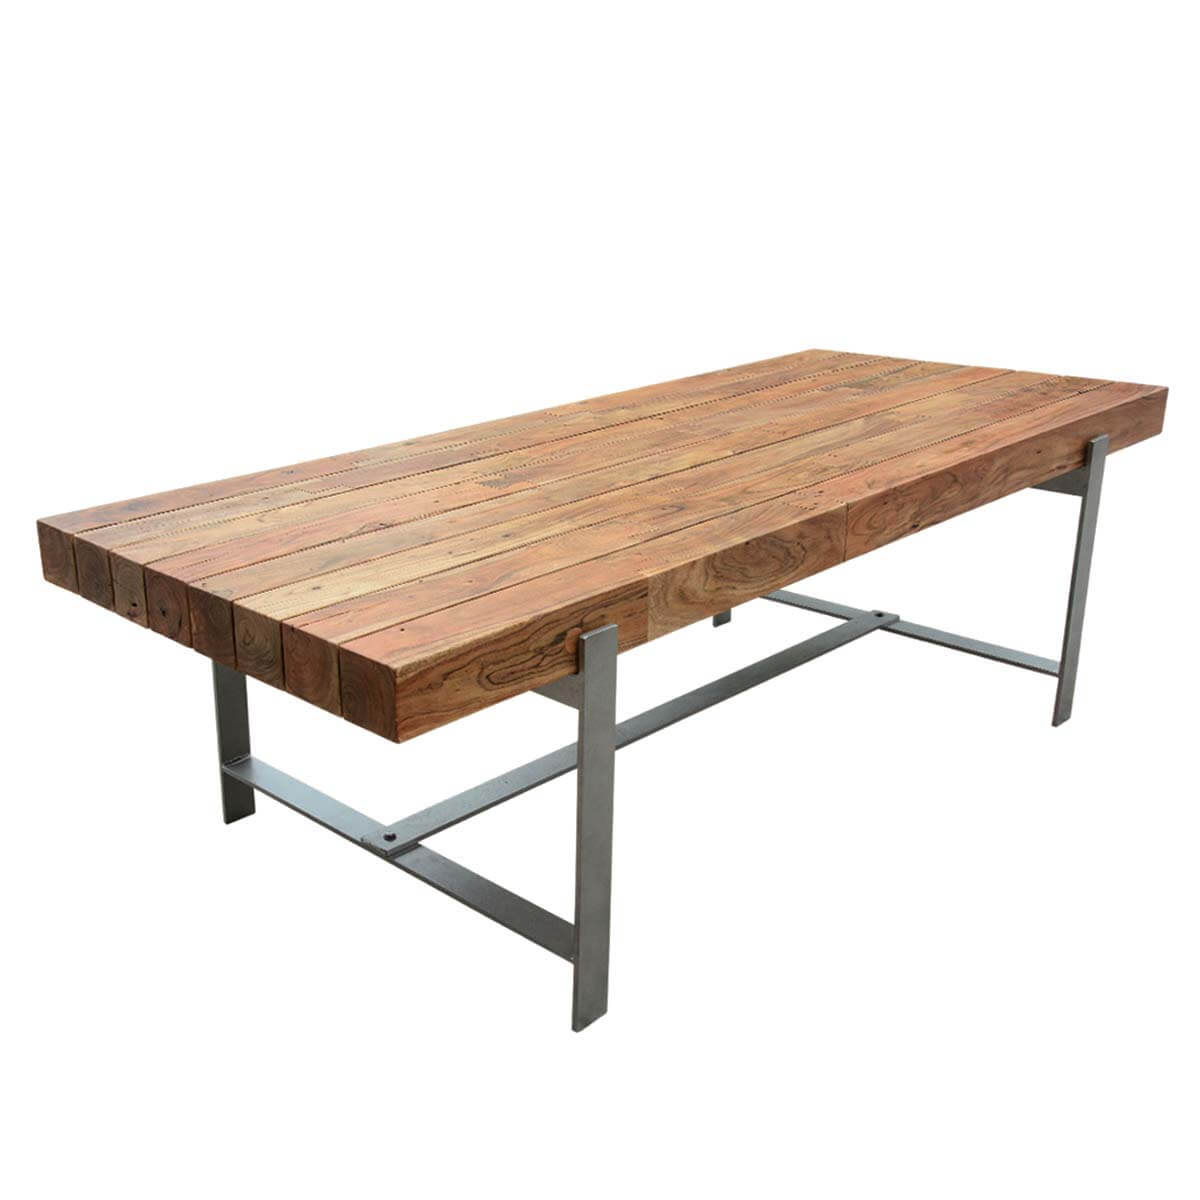 Unique Hankin Industrial Iron Hardwood 94 Large Dining Table